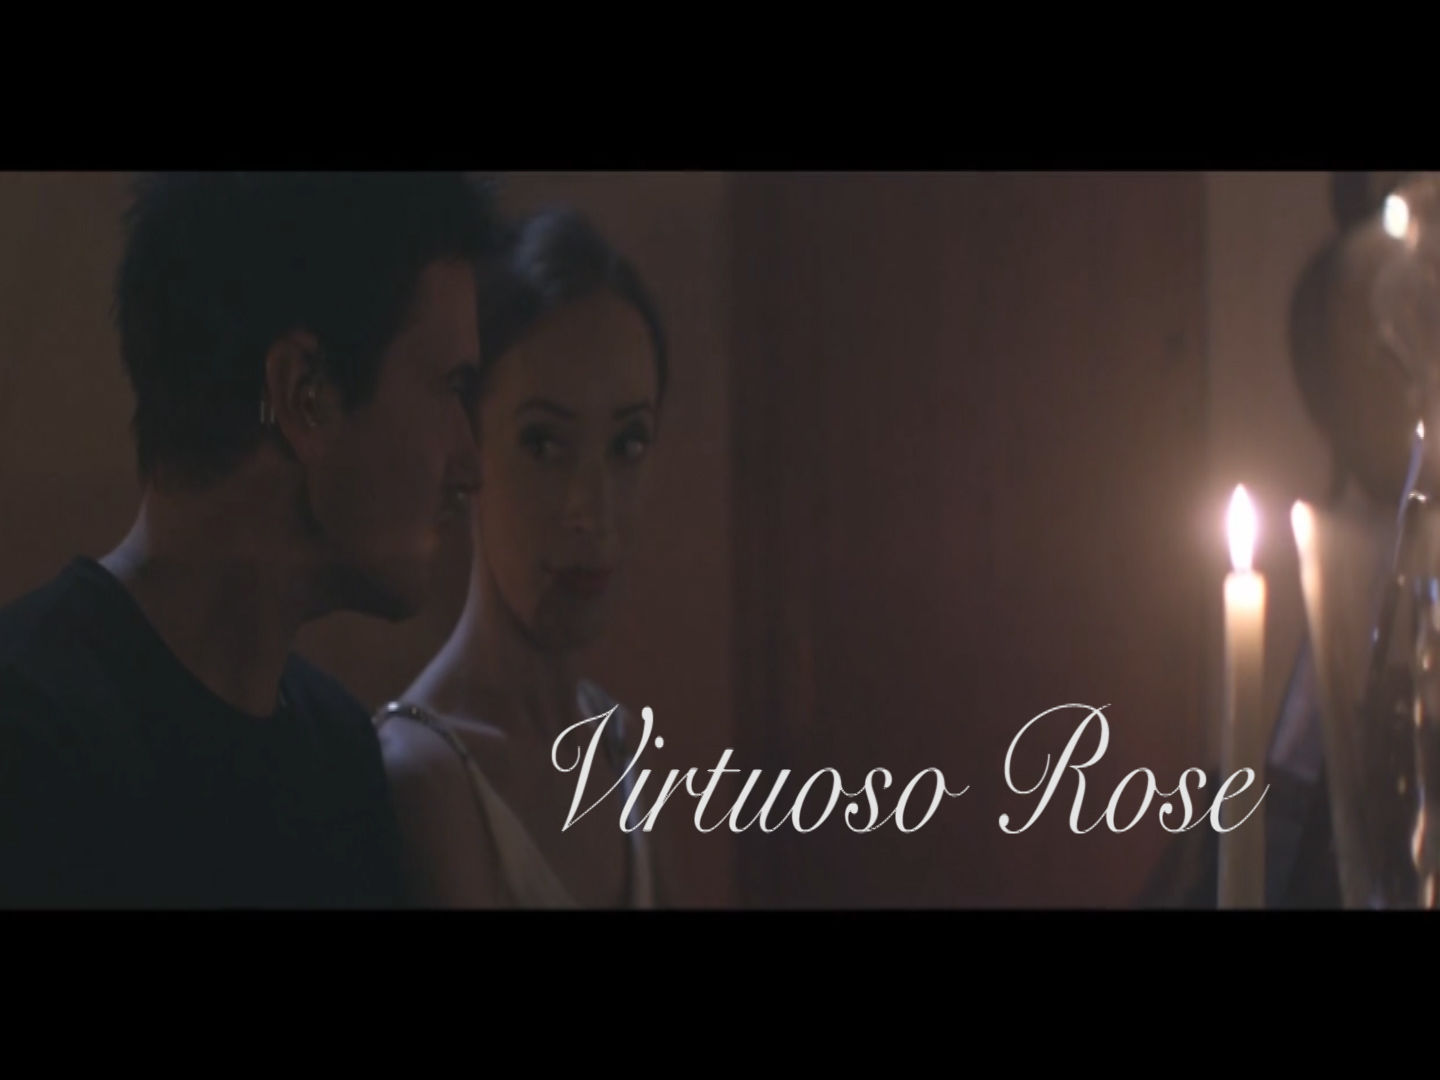 Virtuoso Rose